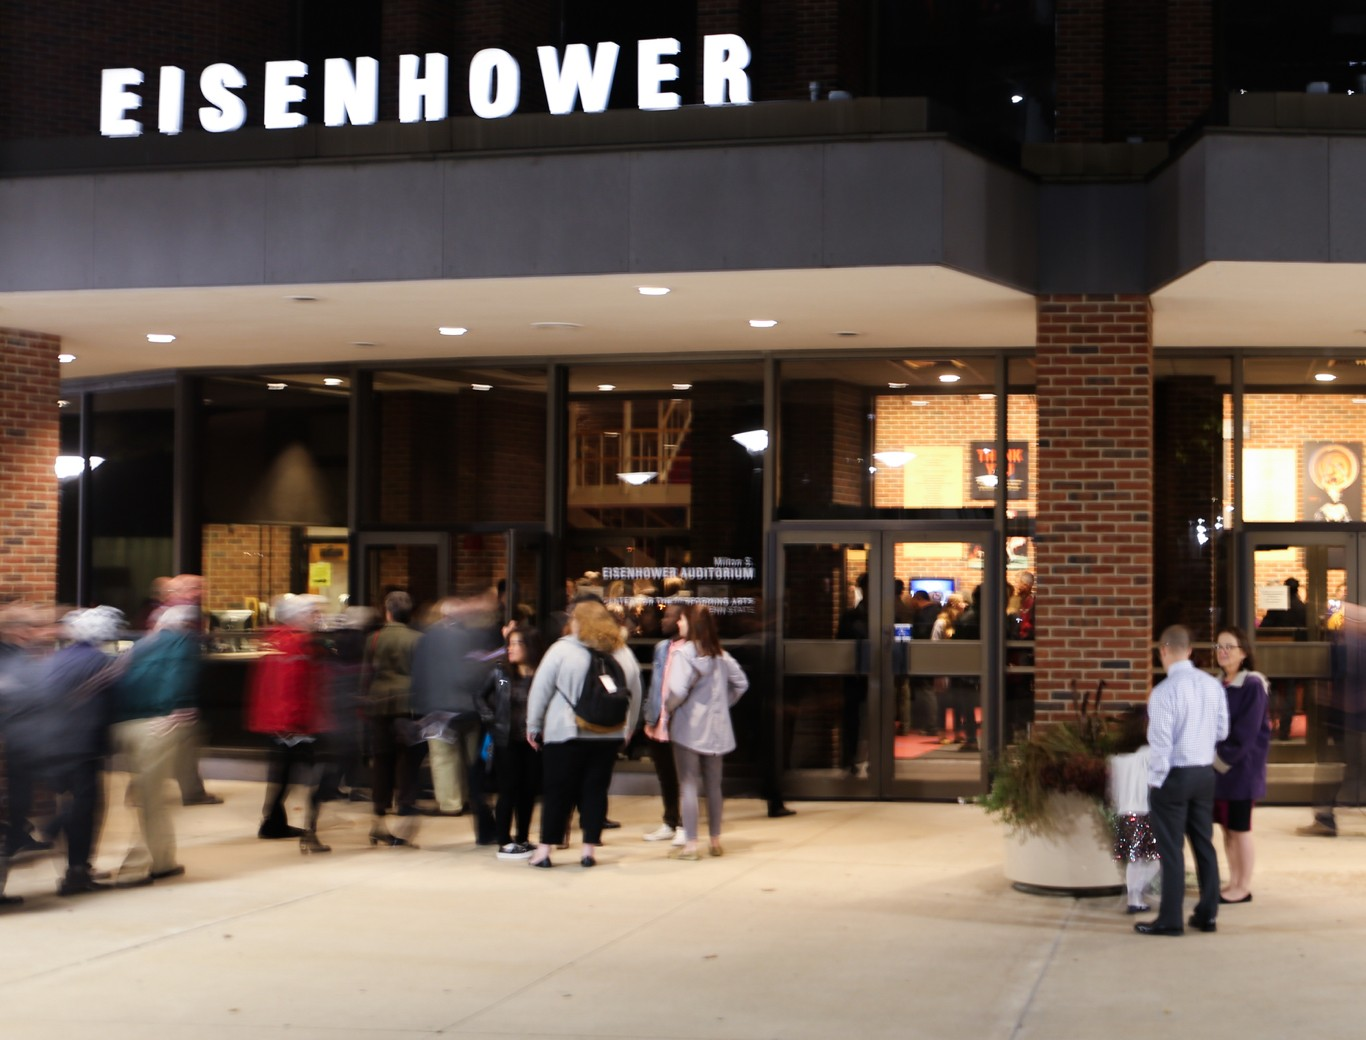 People standing and moving in front of the illuminated entrance to Eisenhower Auditorium